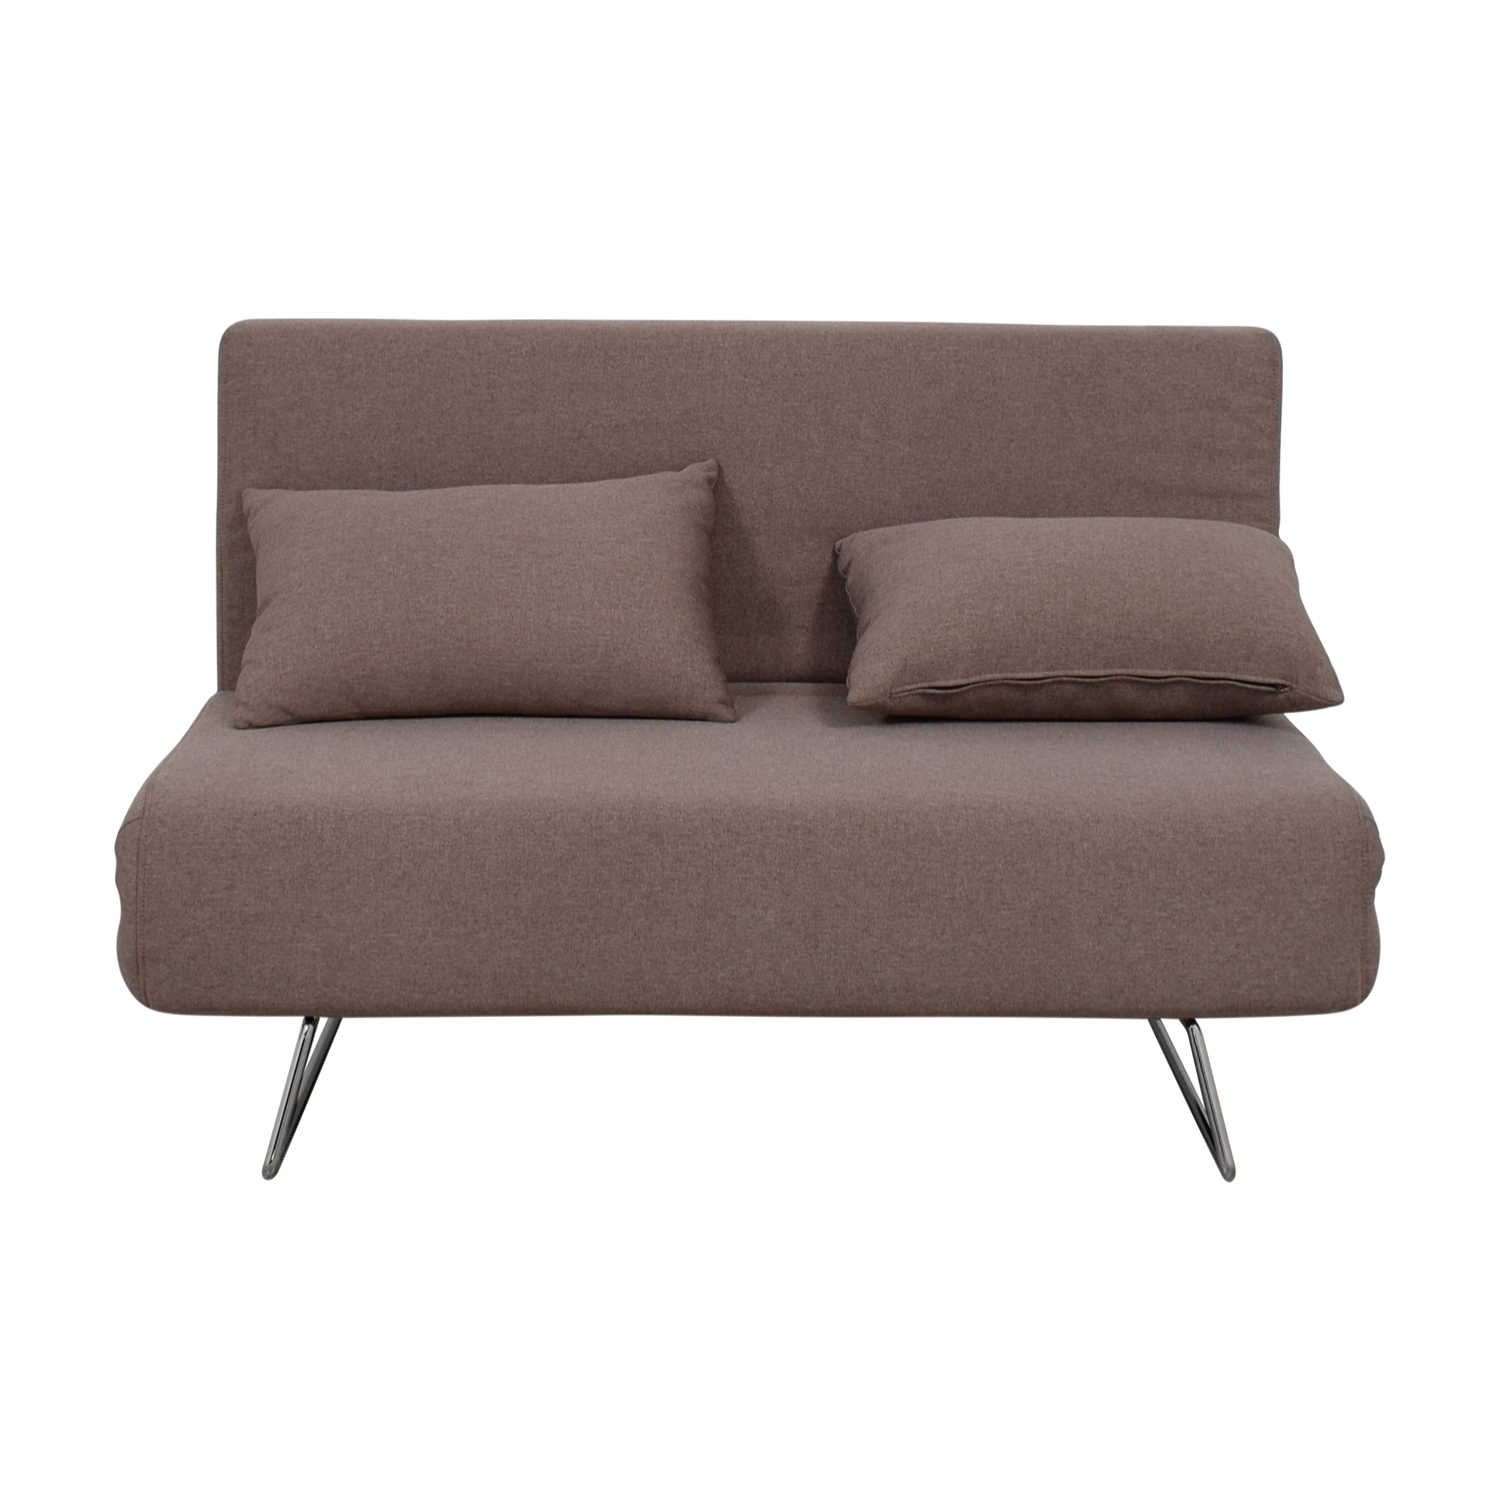 All Modern All Modern Gray Convertible Futon on sale